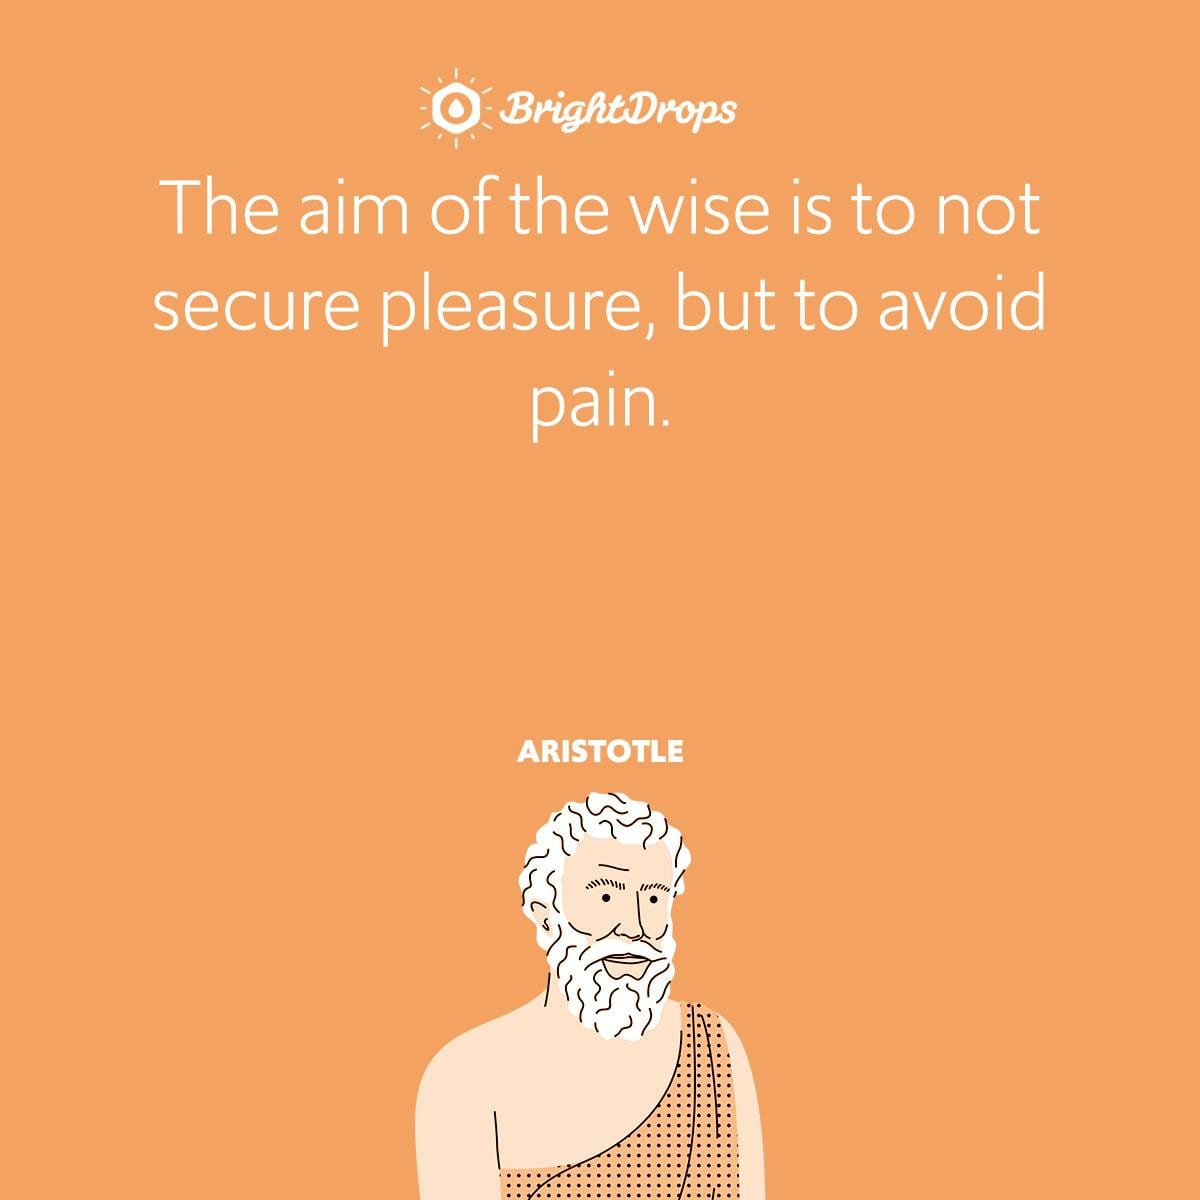 The aim of the wise is to not secure pleasure, but to avoid pain.